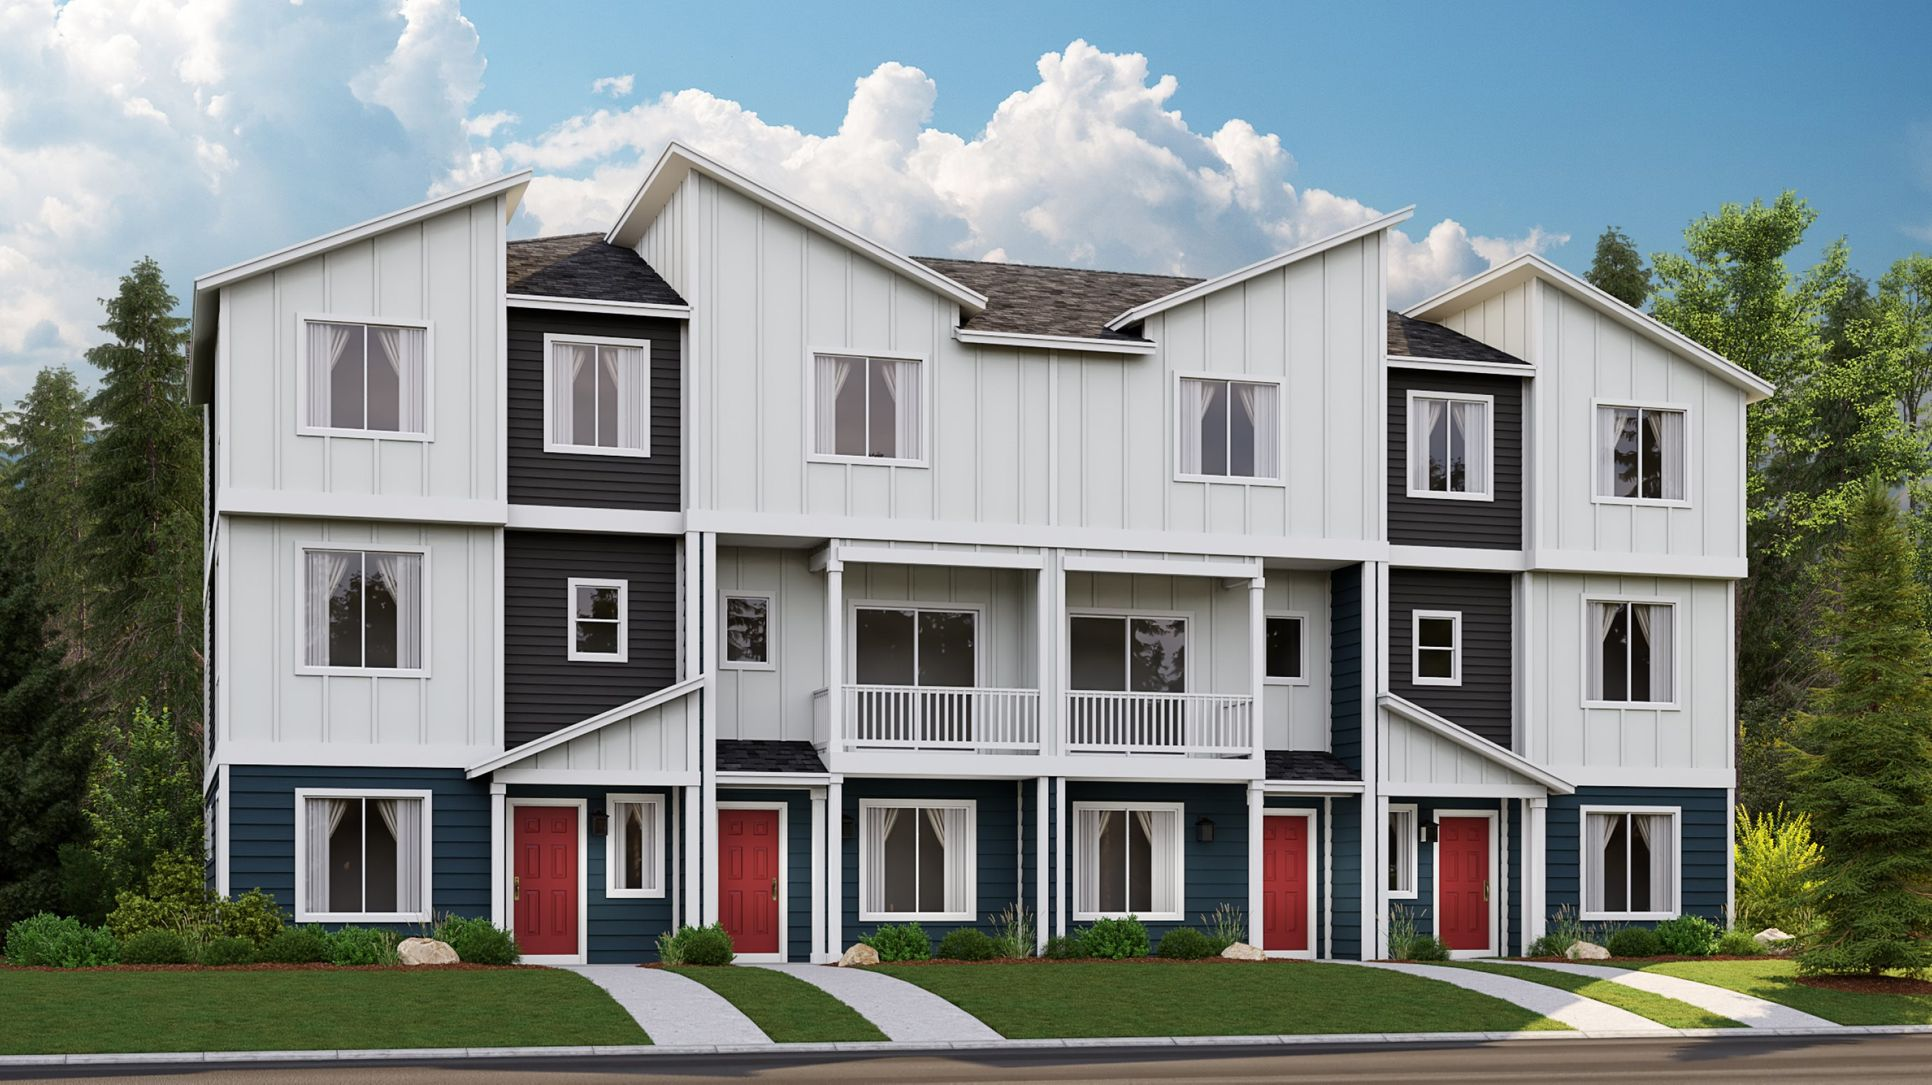 Village Green Townhomes - Aster Exterior